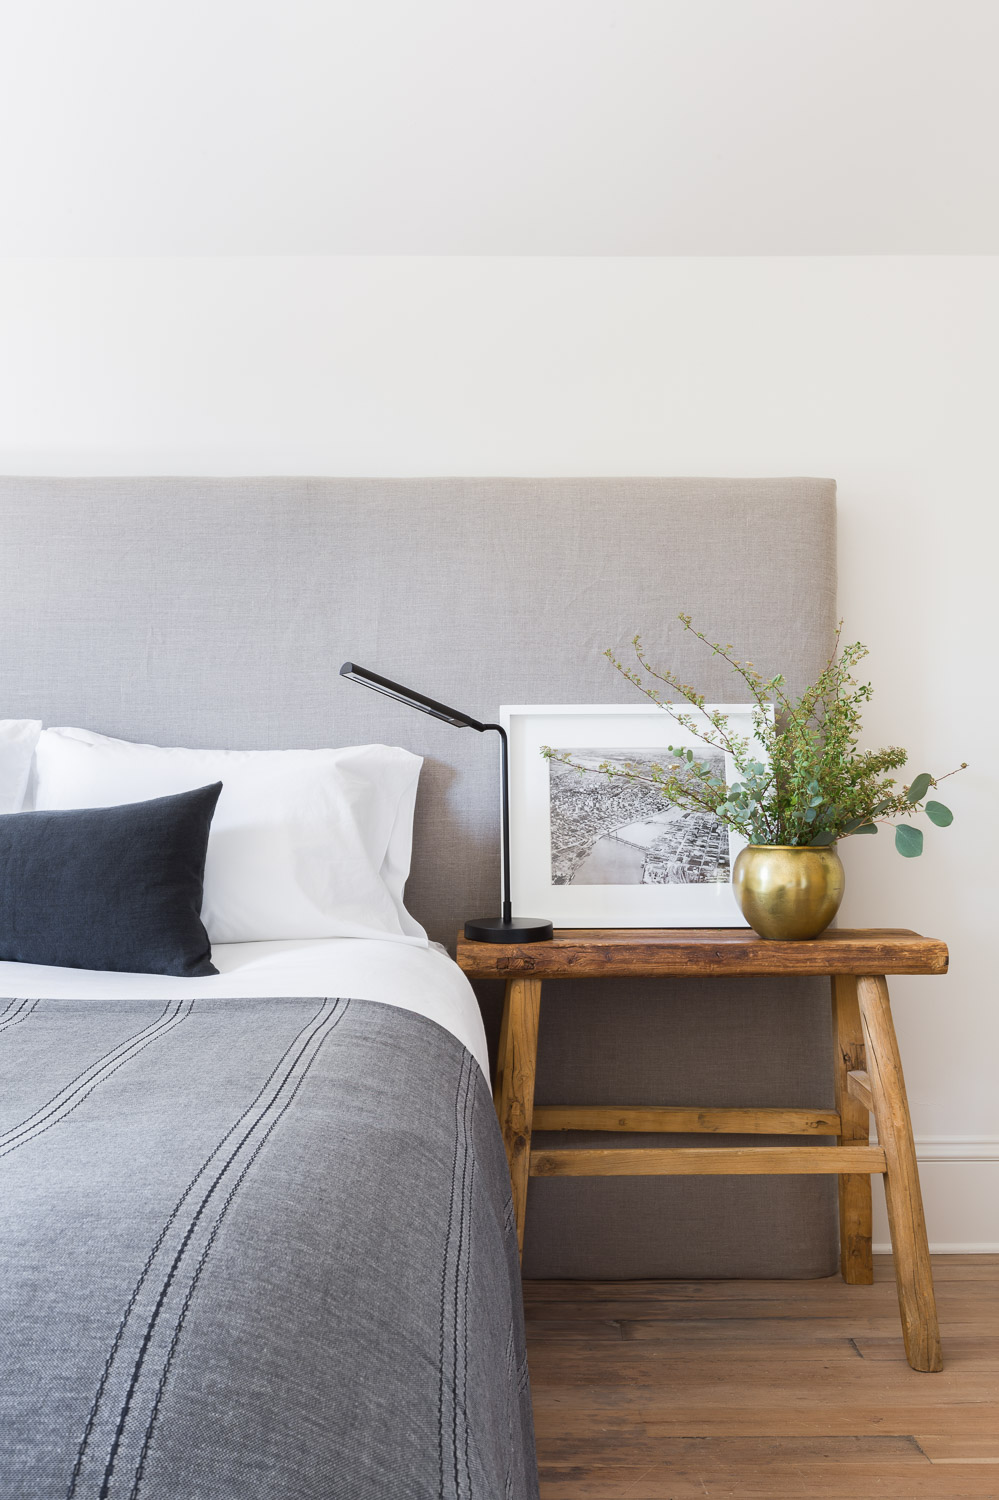 Neutral Bedroom by Kaemingk Design.  Photo: Alyssa Rosenheck